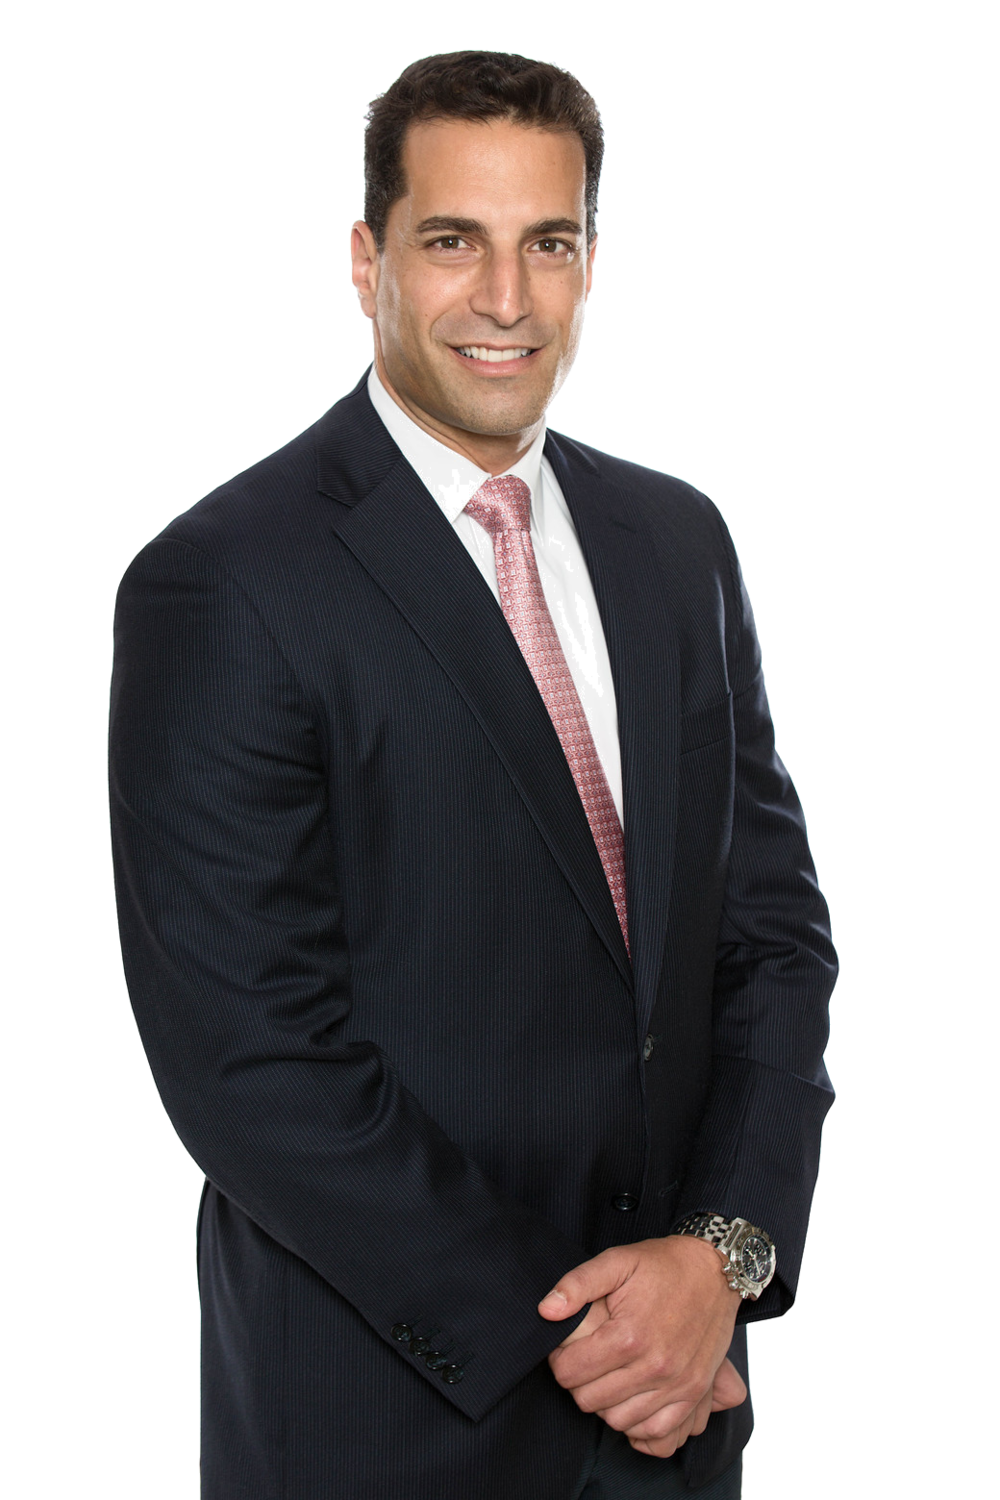 Board Certified Civil Trial Lawyer Sagi Shaked has been practicing law since 2000, and went on to found the successful Shaked Law Firm in 2007, where he became one of the Top 100 Trial Lawyers in the United Statesas named by the American Trial Lawyers Association. -